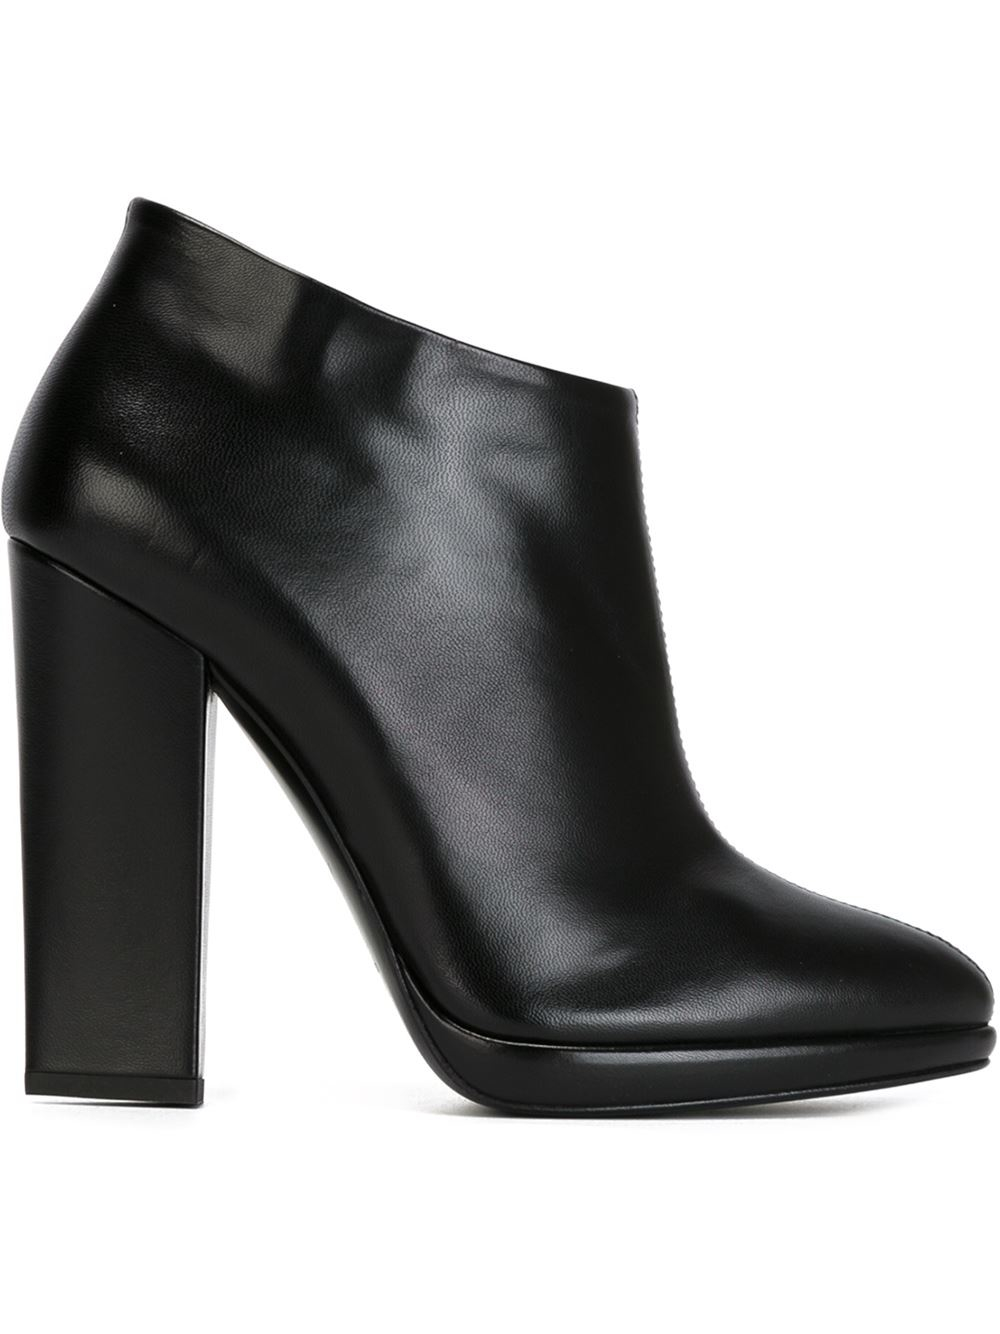 Free shipping BOTH ways on chunky heel, from our vast selection of styles. Fast delivery, and 24/7/ real-person service with a smile. Click or call